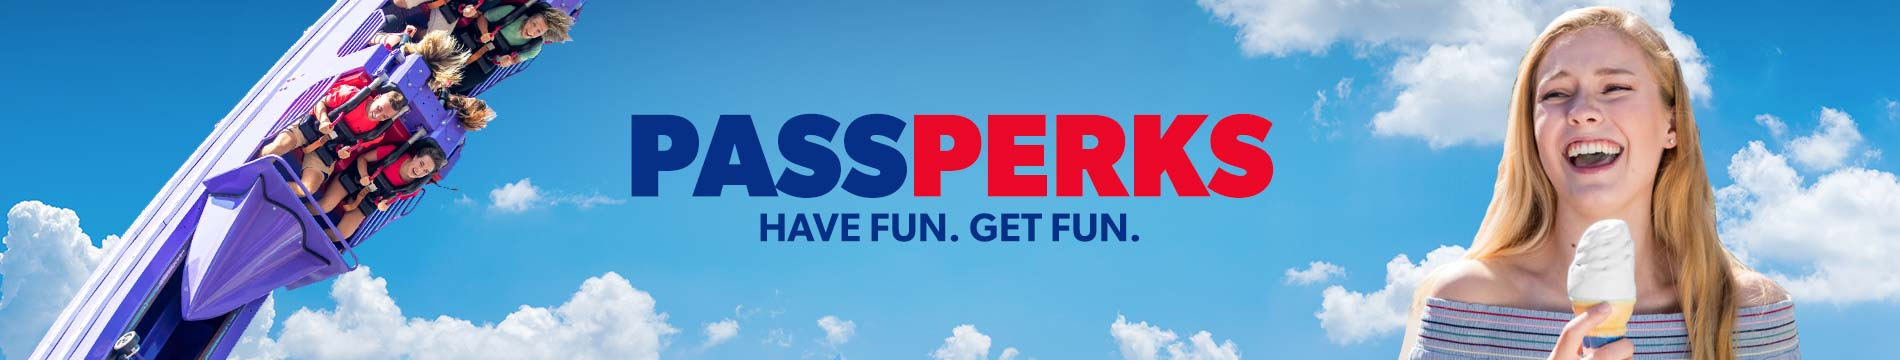 Pass Perks Loyalty Program at Valleyfair